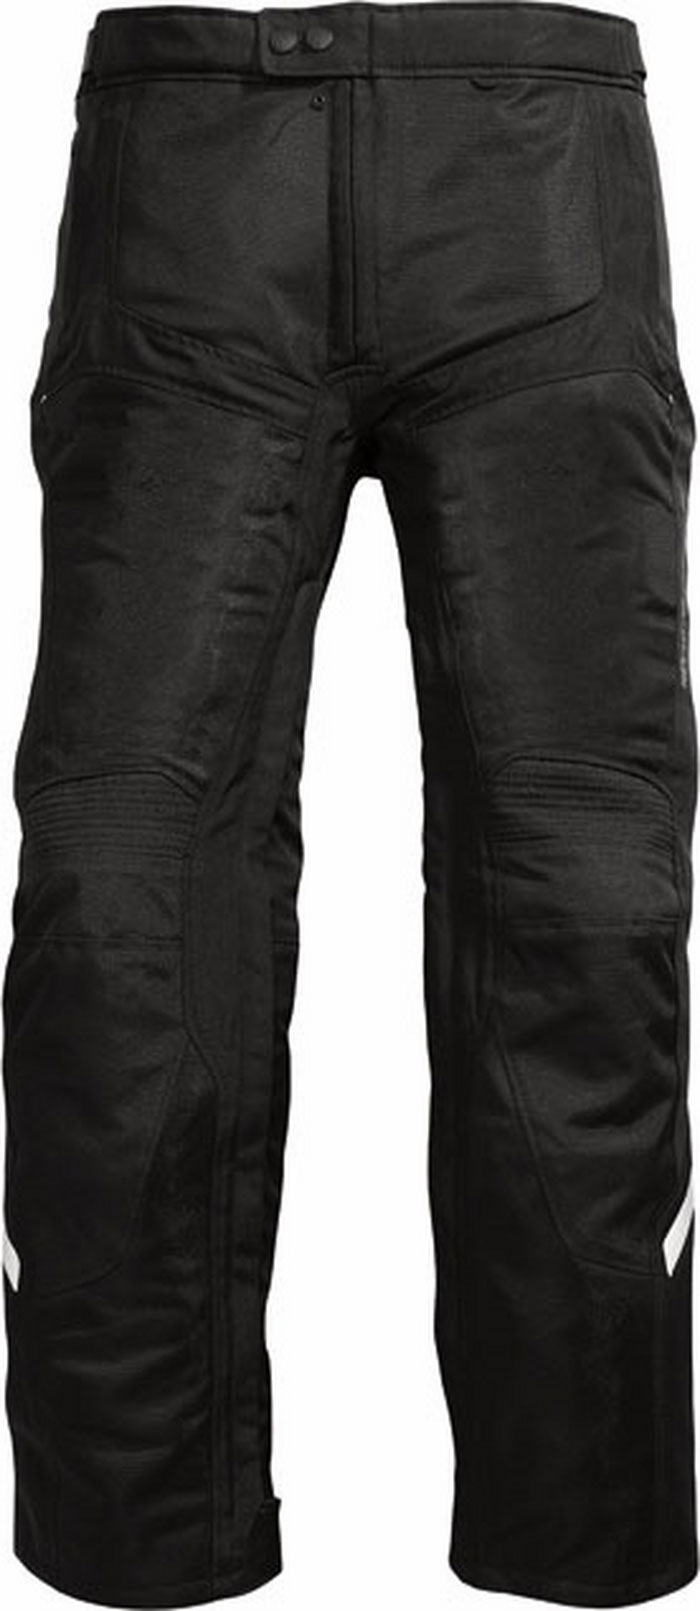 Pantaloni moto estivi Rev'it Airwave neri